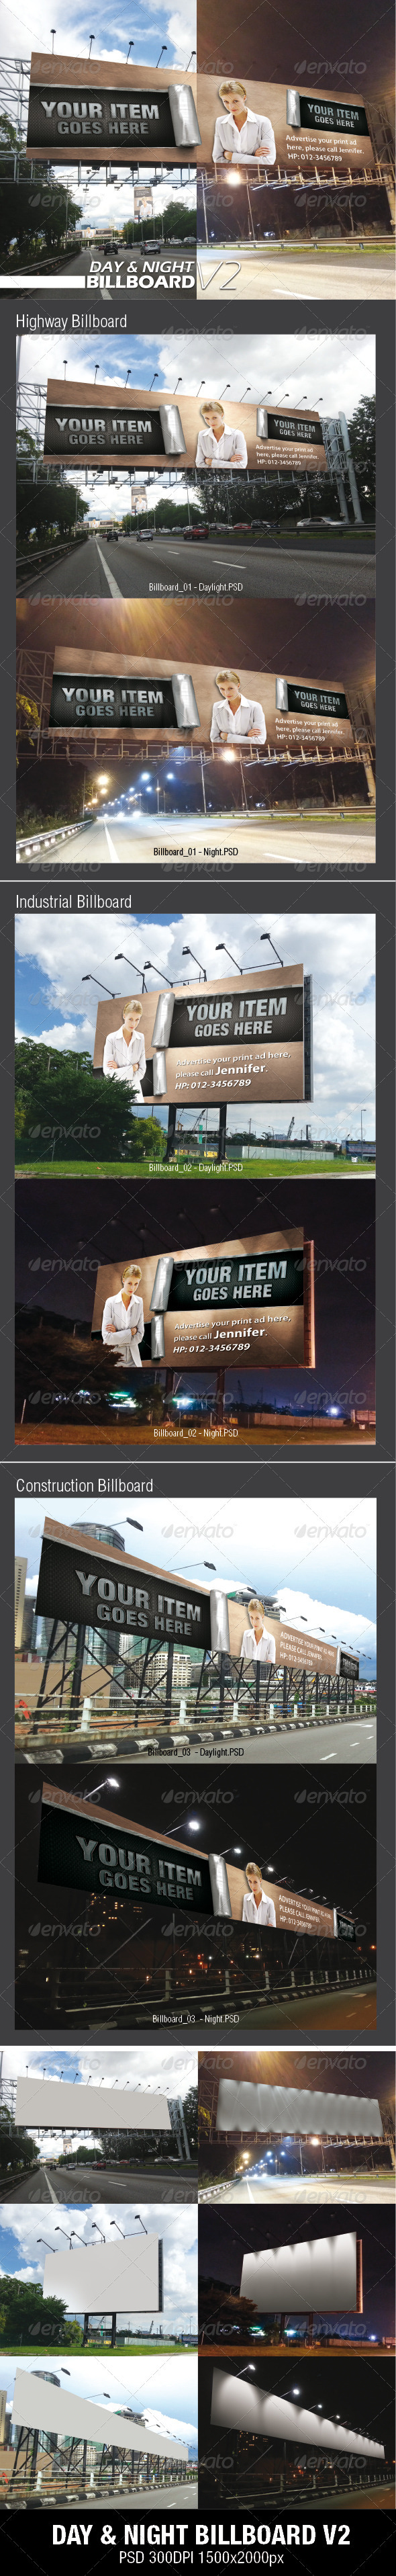 GraphicRiver Day & Night Billbaord V2 Mock-ups 3542810